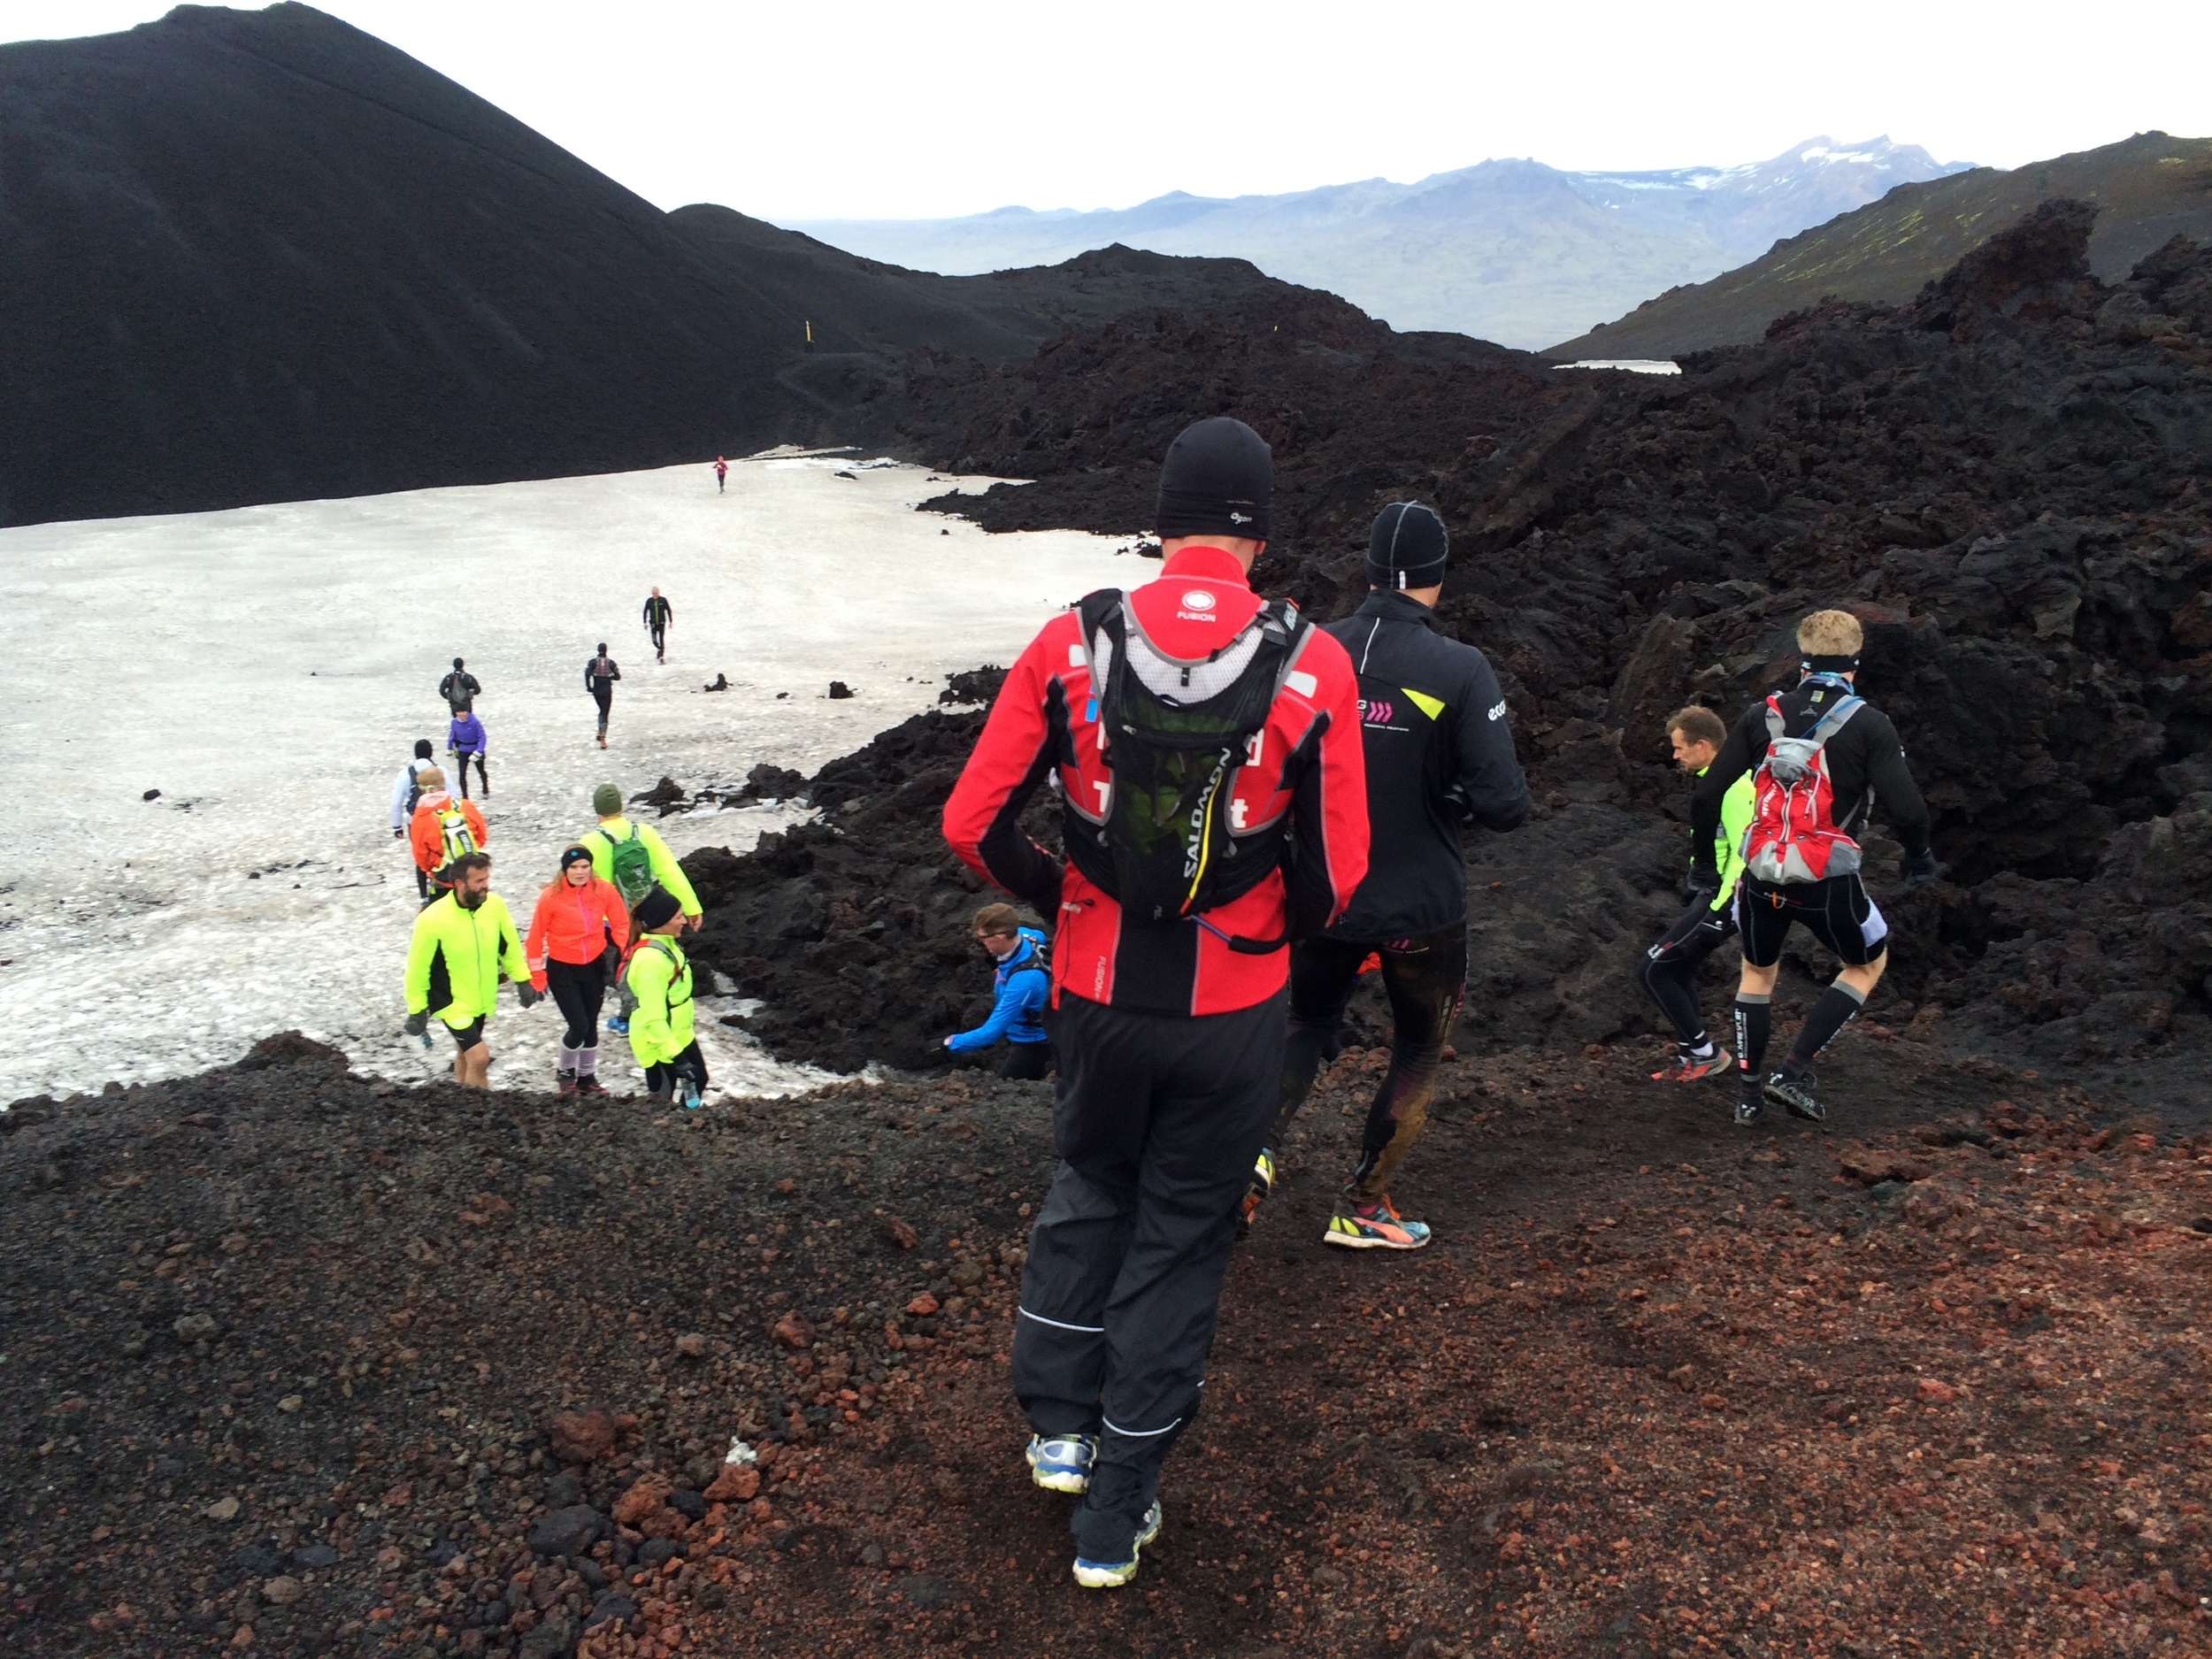 Running on lava and snow